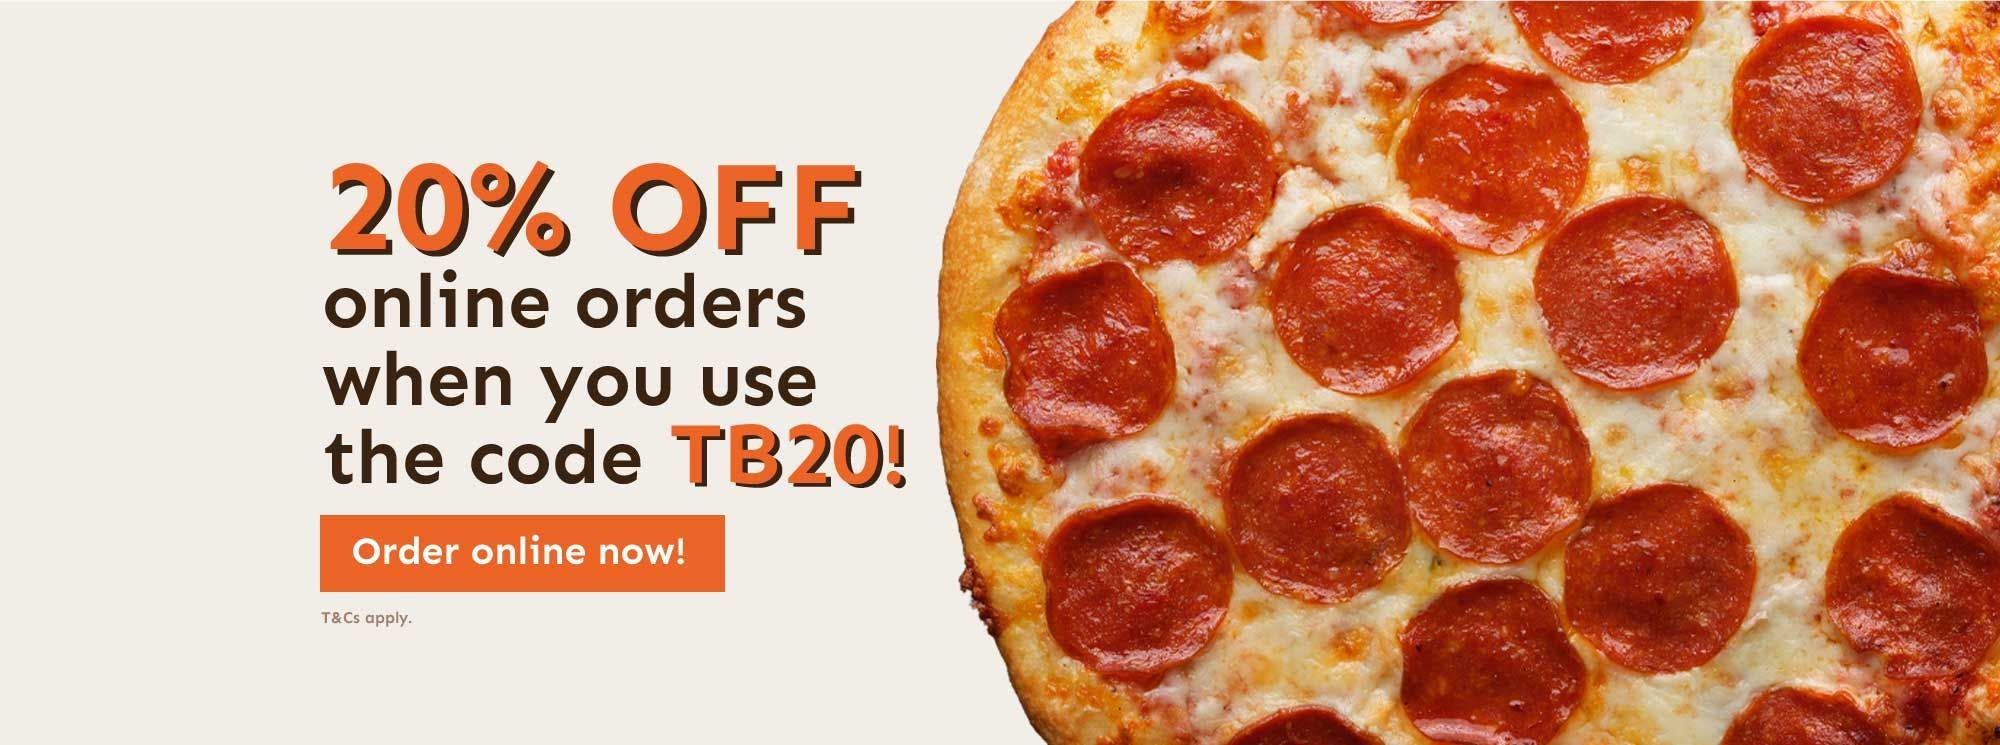 20% off online order with code TB20